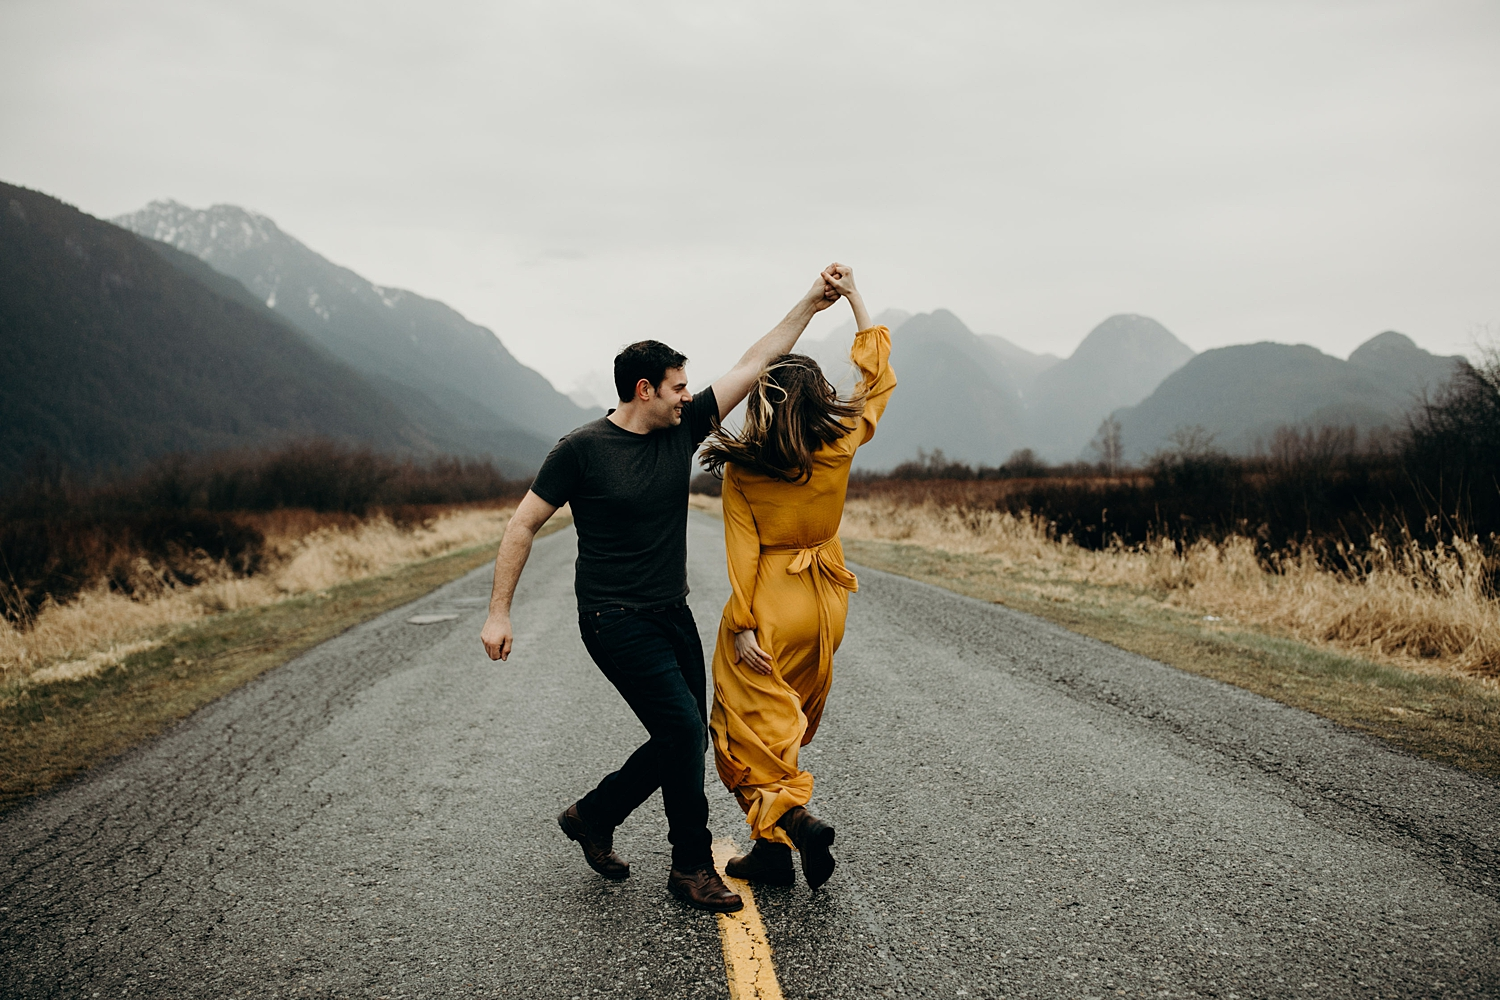 The McLachlans - Vancouver Wedding Photographers - Pitt Lake Engagements - Dan and Alleigra_0020.jpg